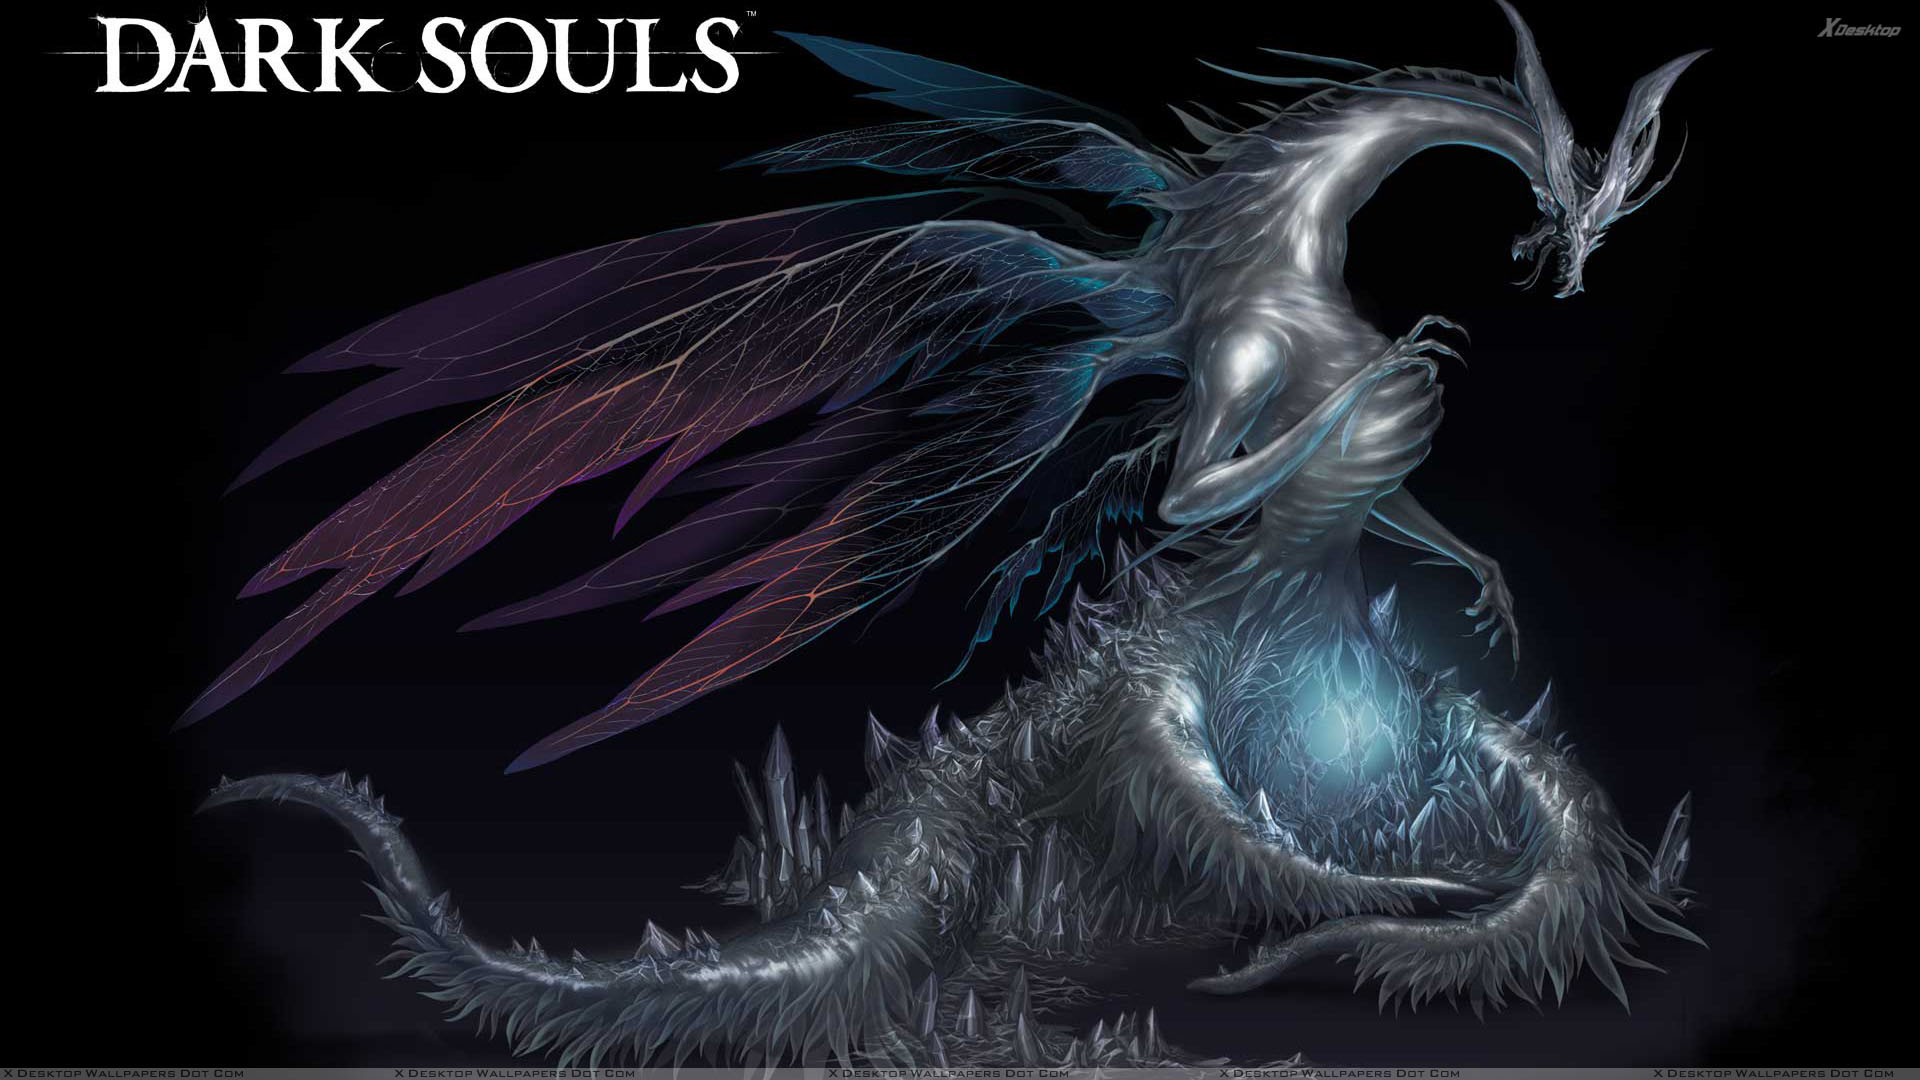 Free Download Dark Souls Black Knight Wallpaper 1920x1080 For